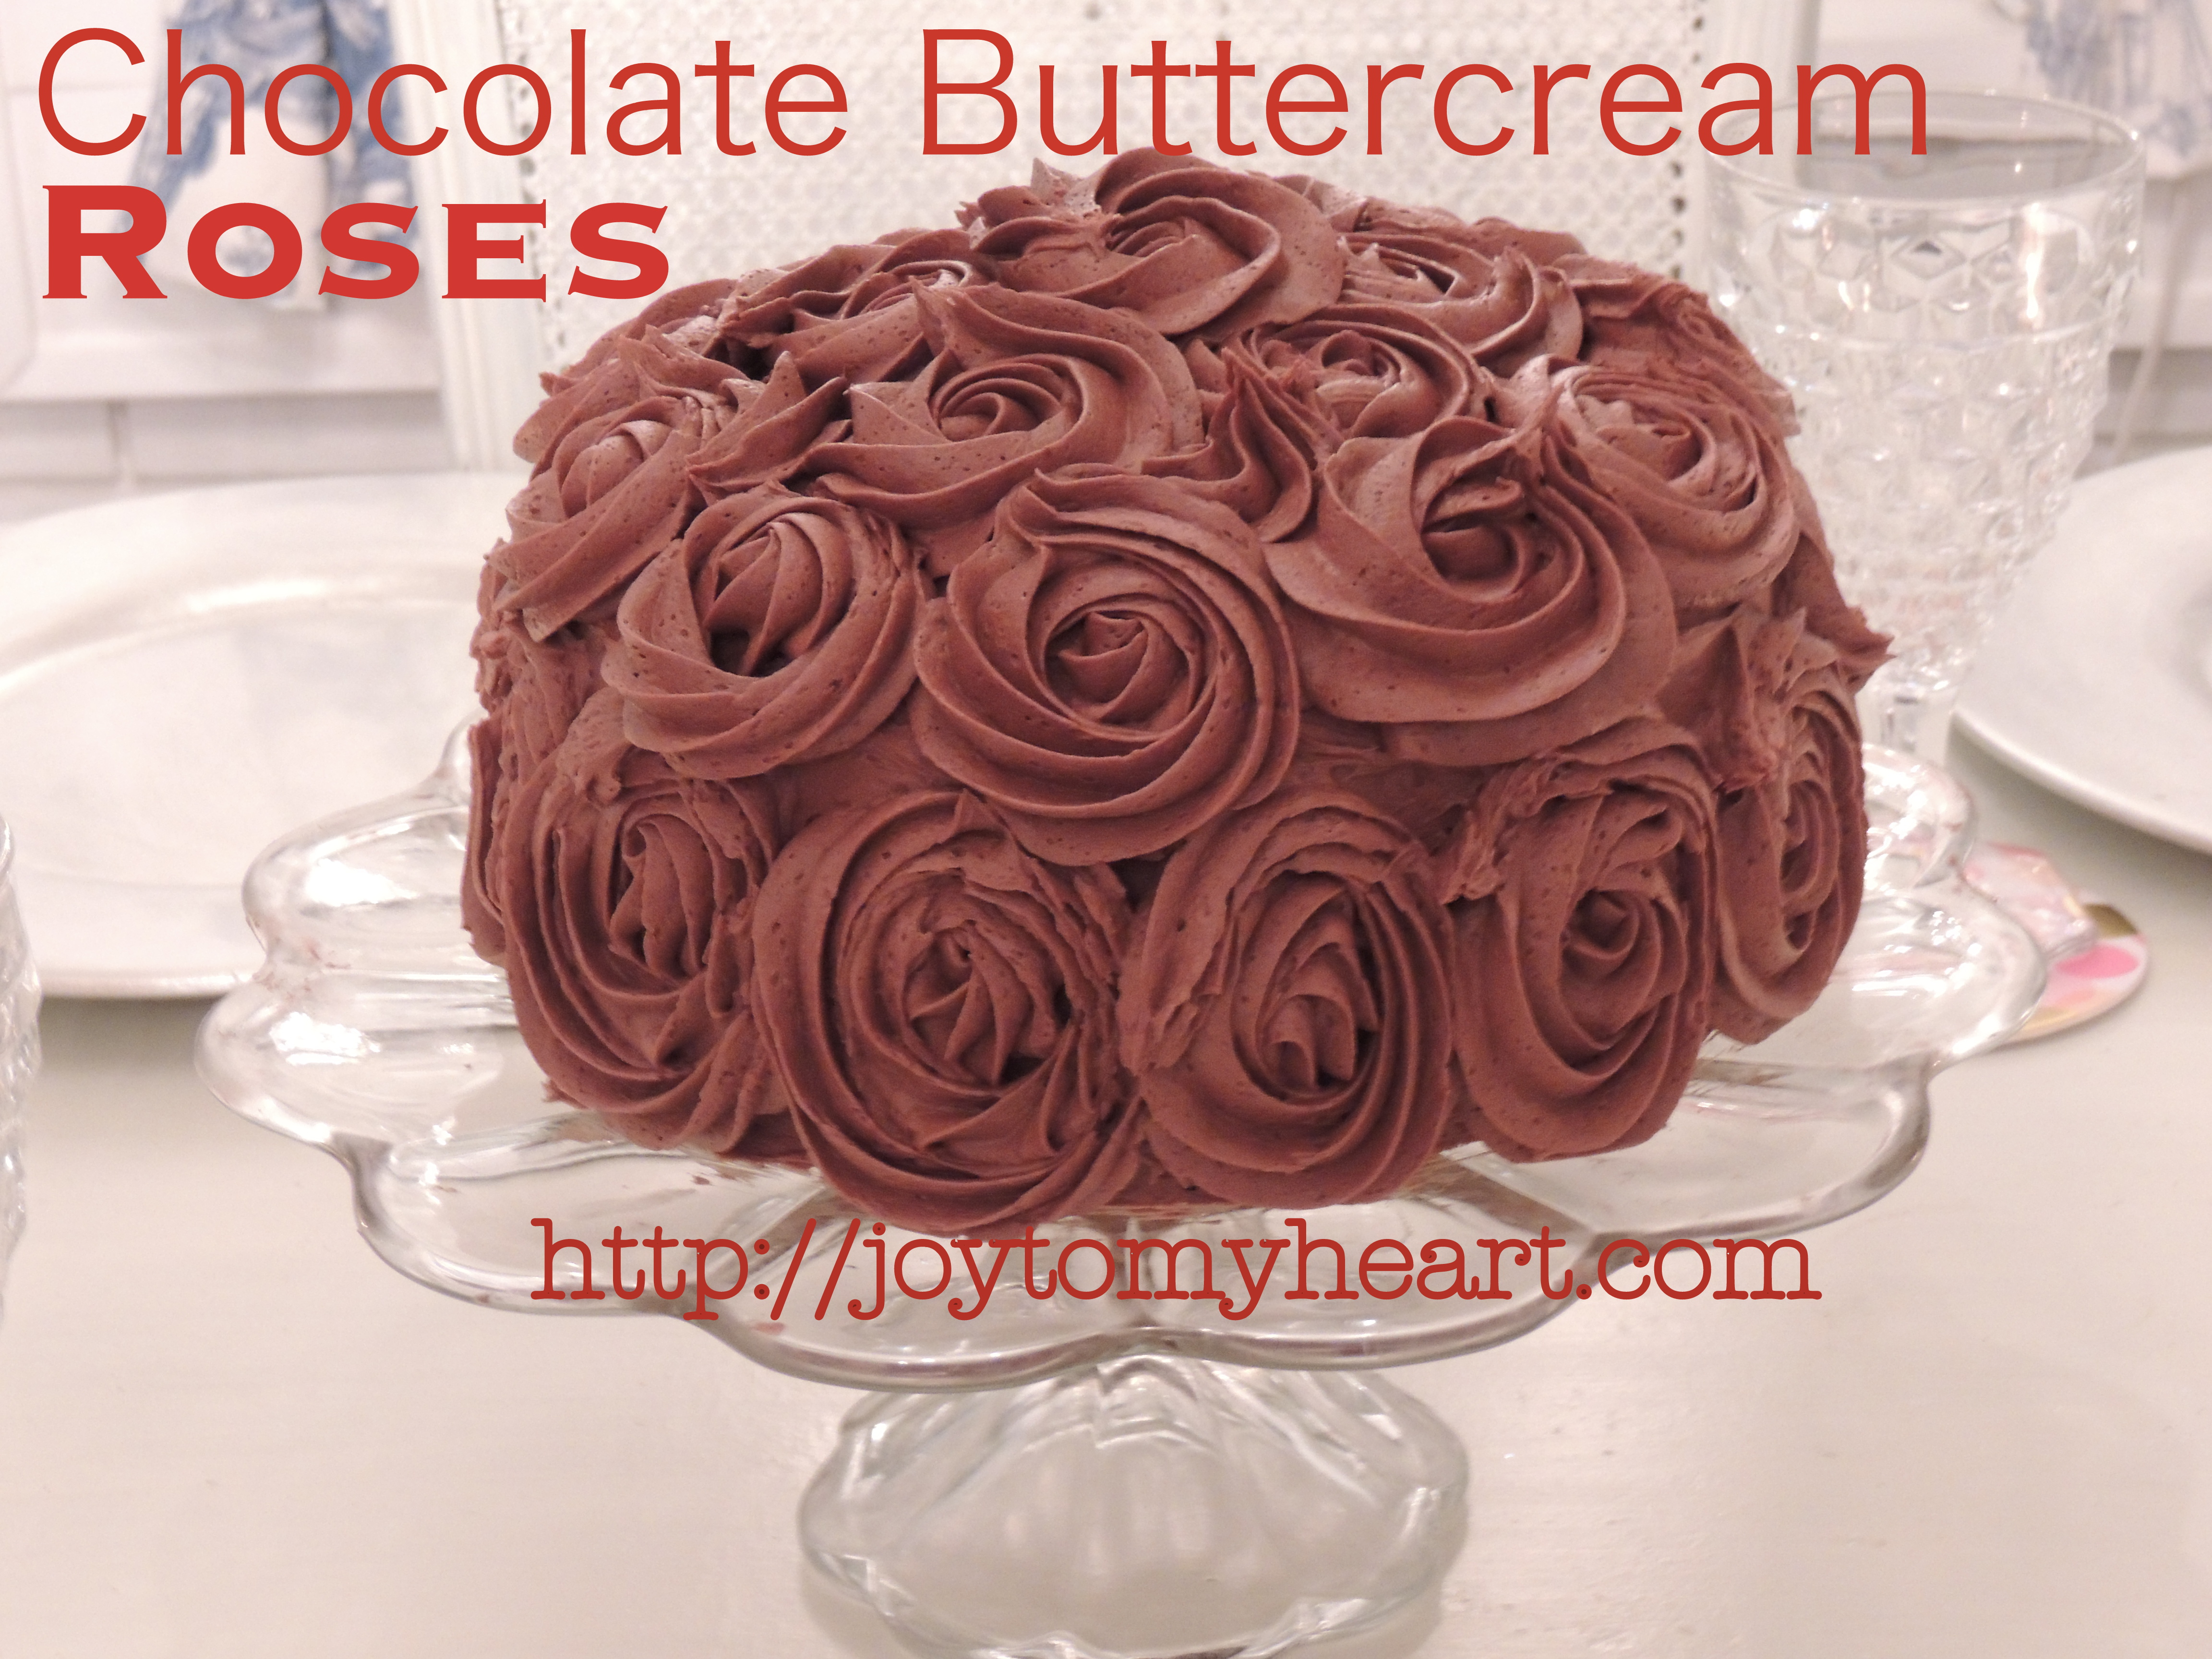 Chocolate Rose Cake Archives - Joy To My Heart